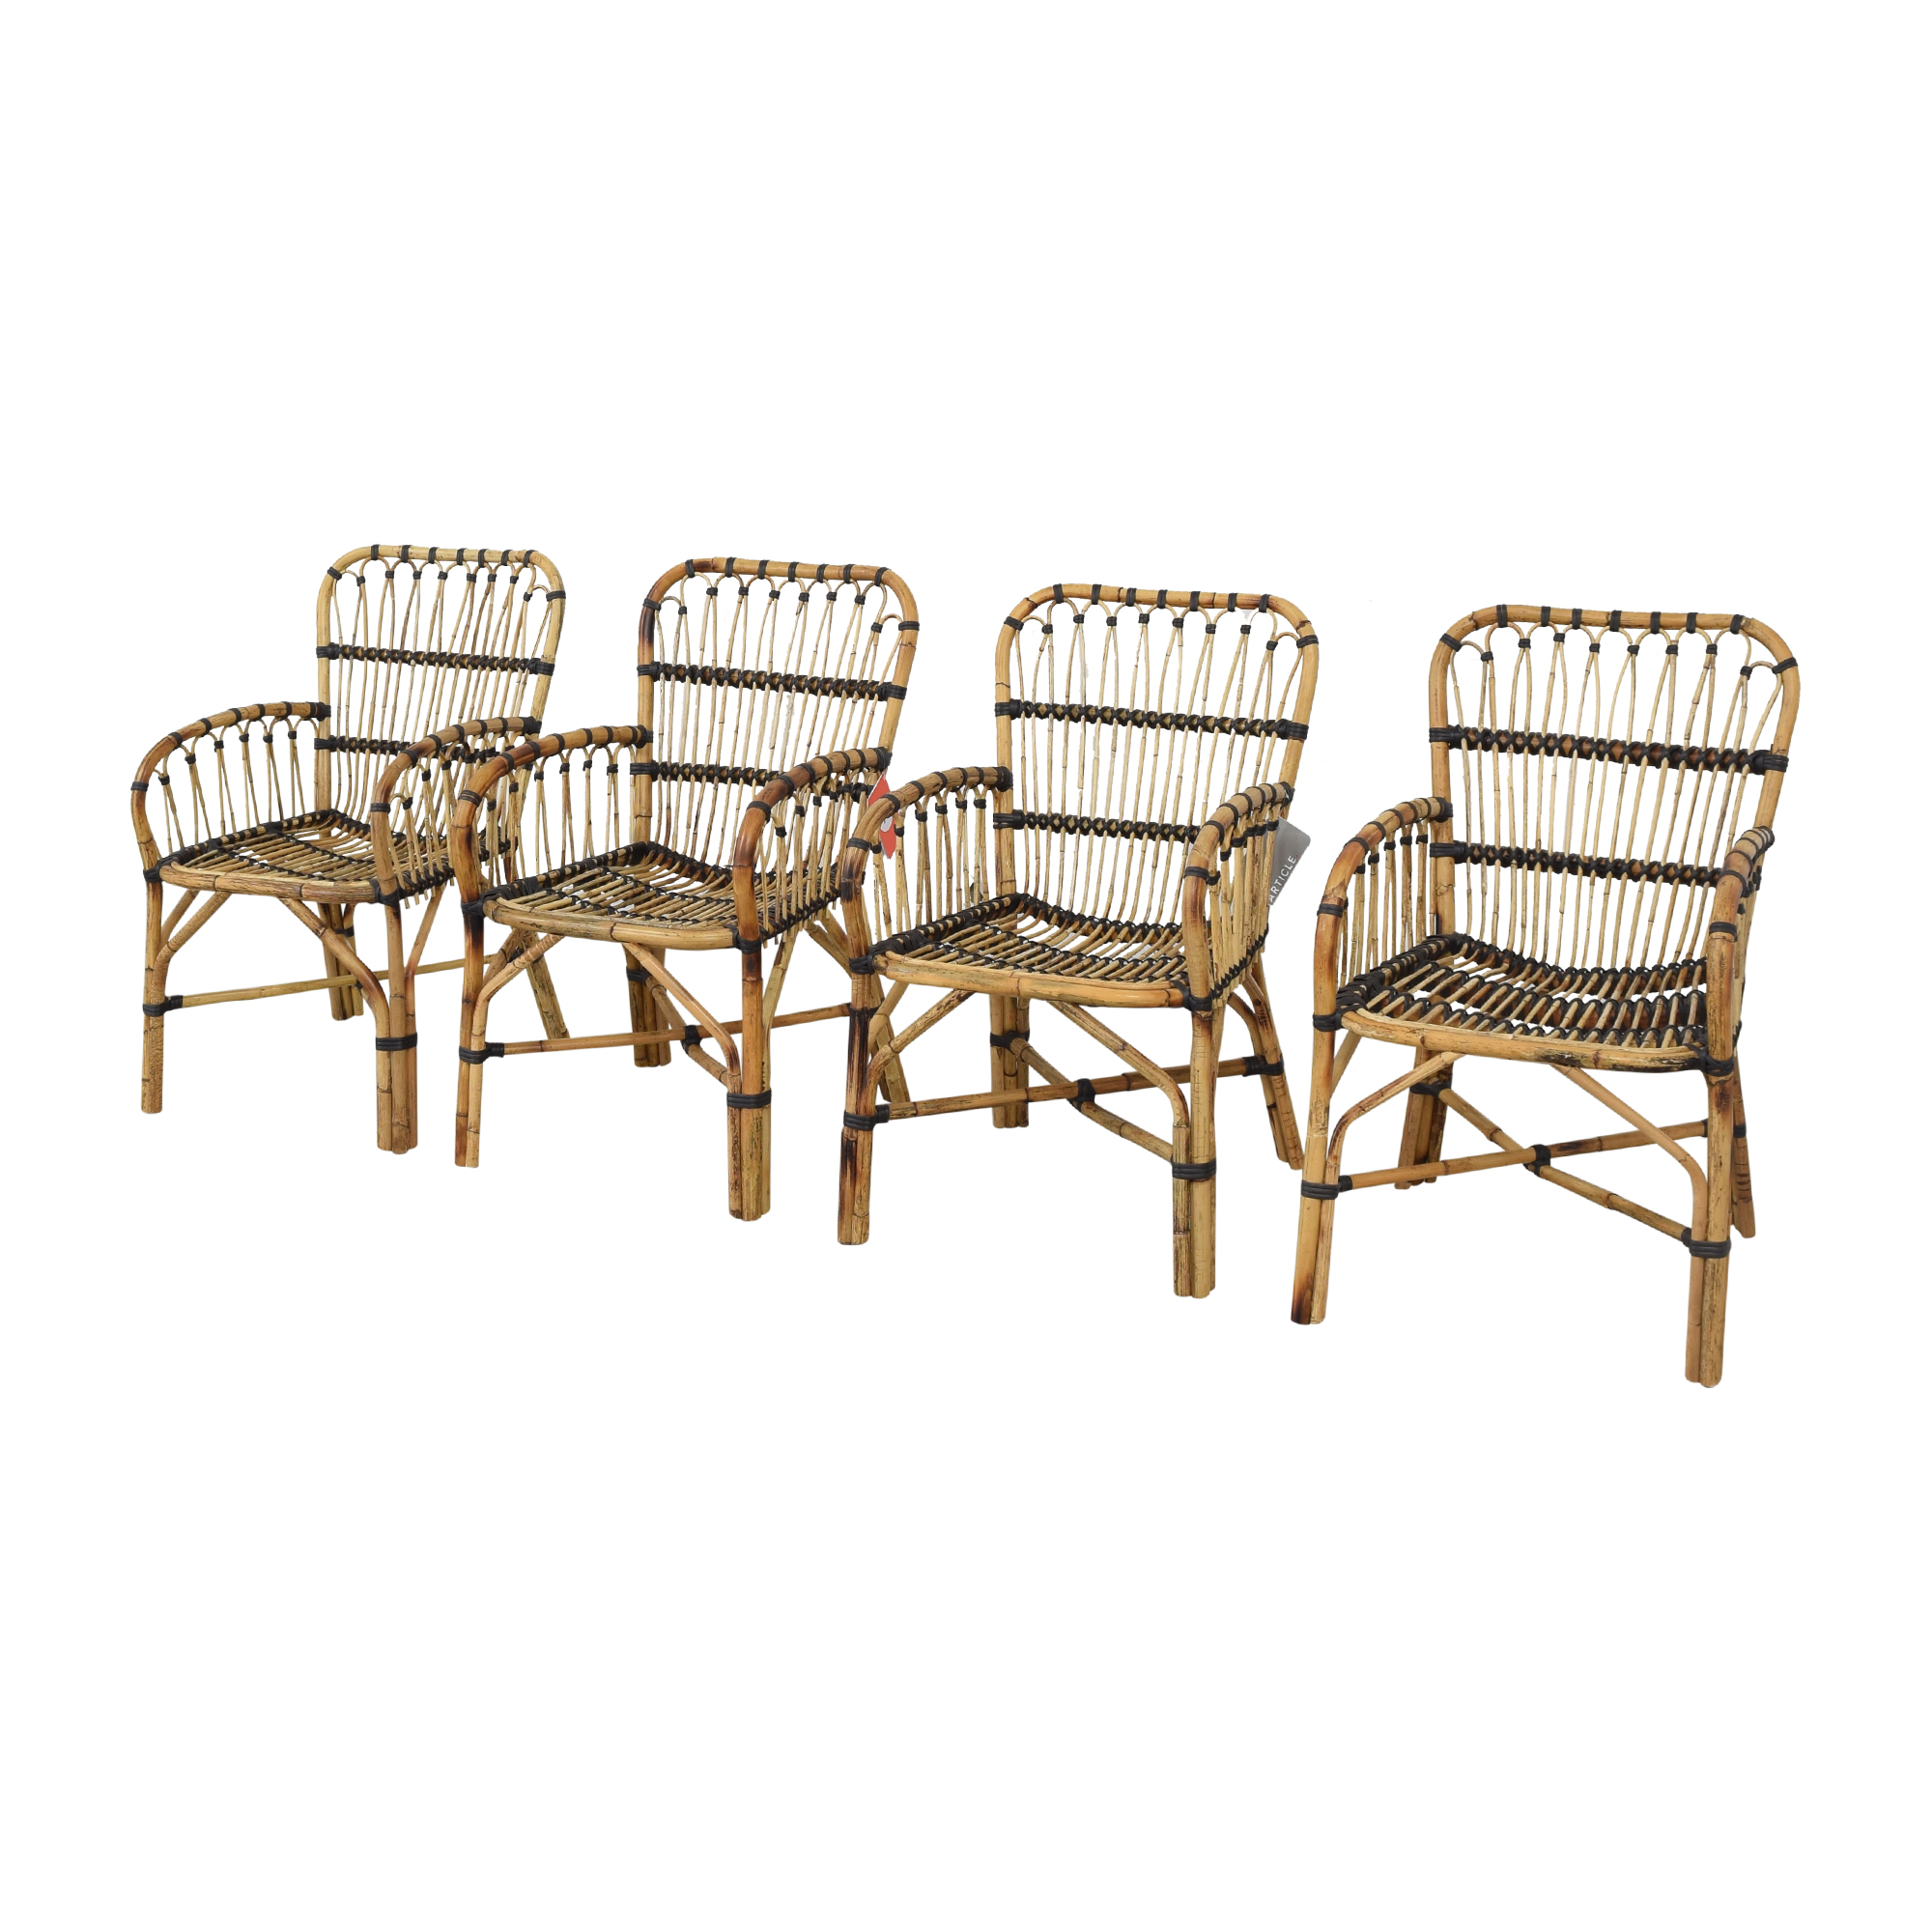 Article Malou Rattan Dining Chairs / Dining Chairs